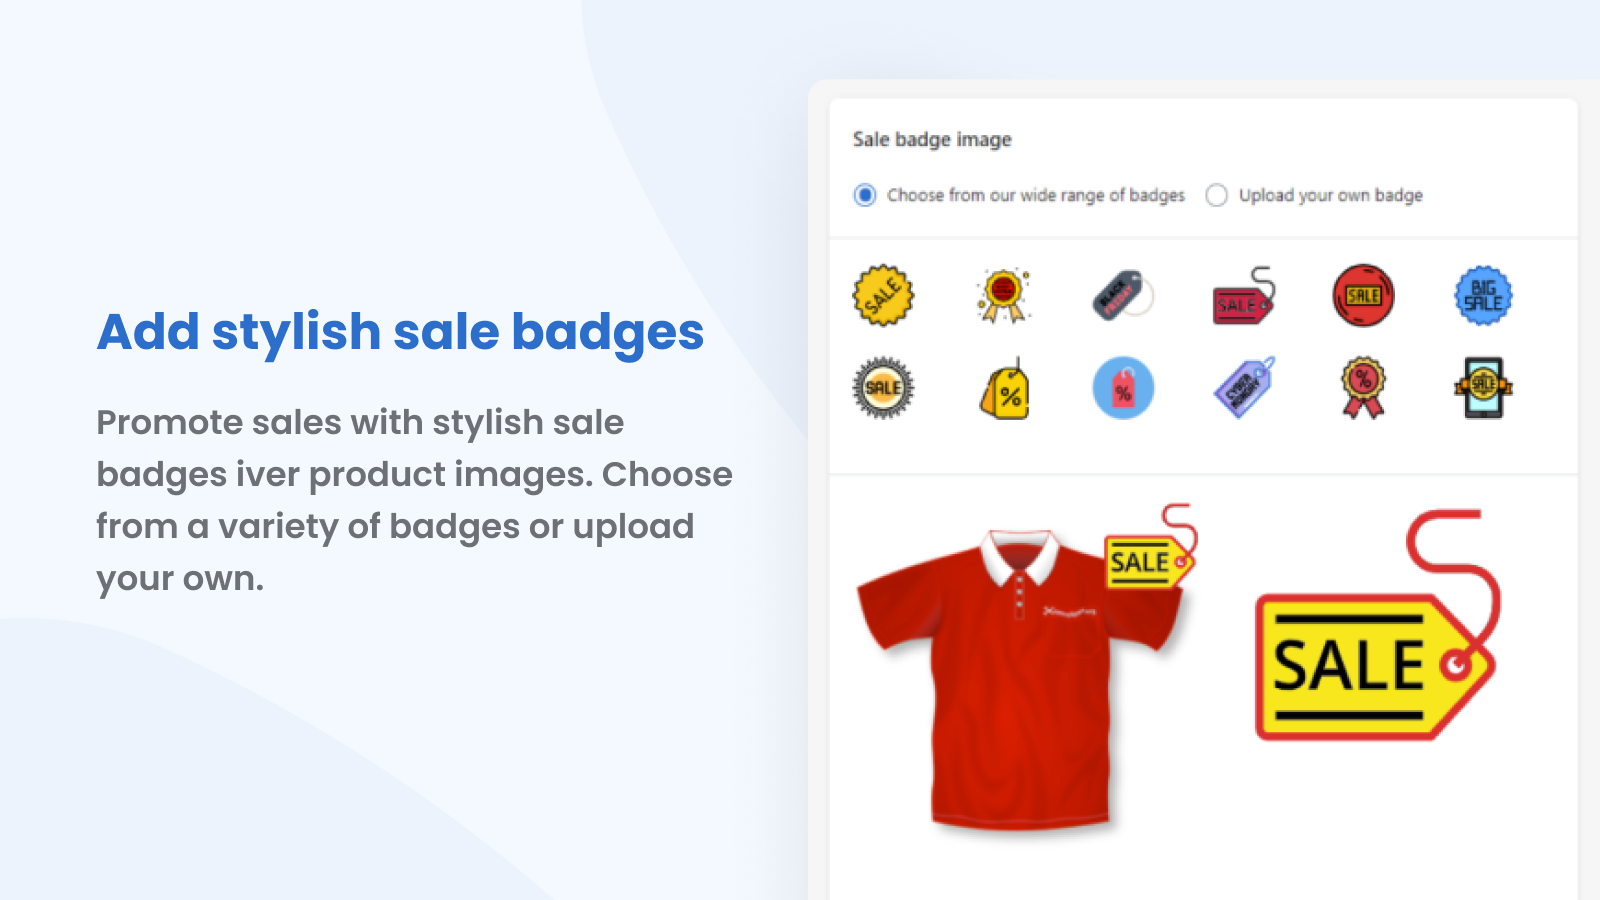 Add stylish sale badges over product images.